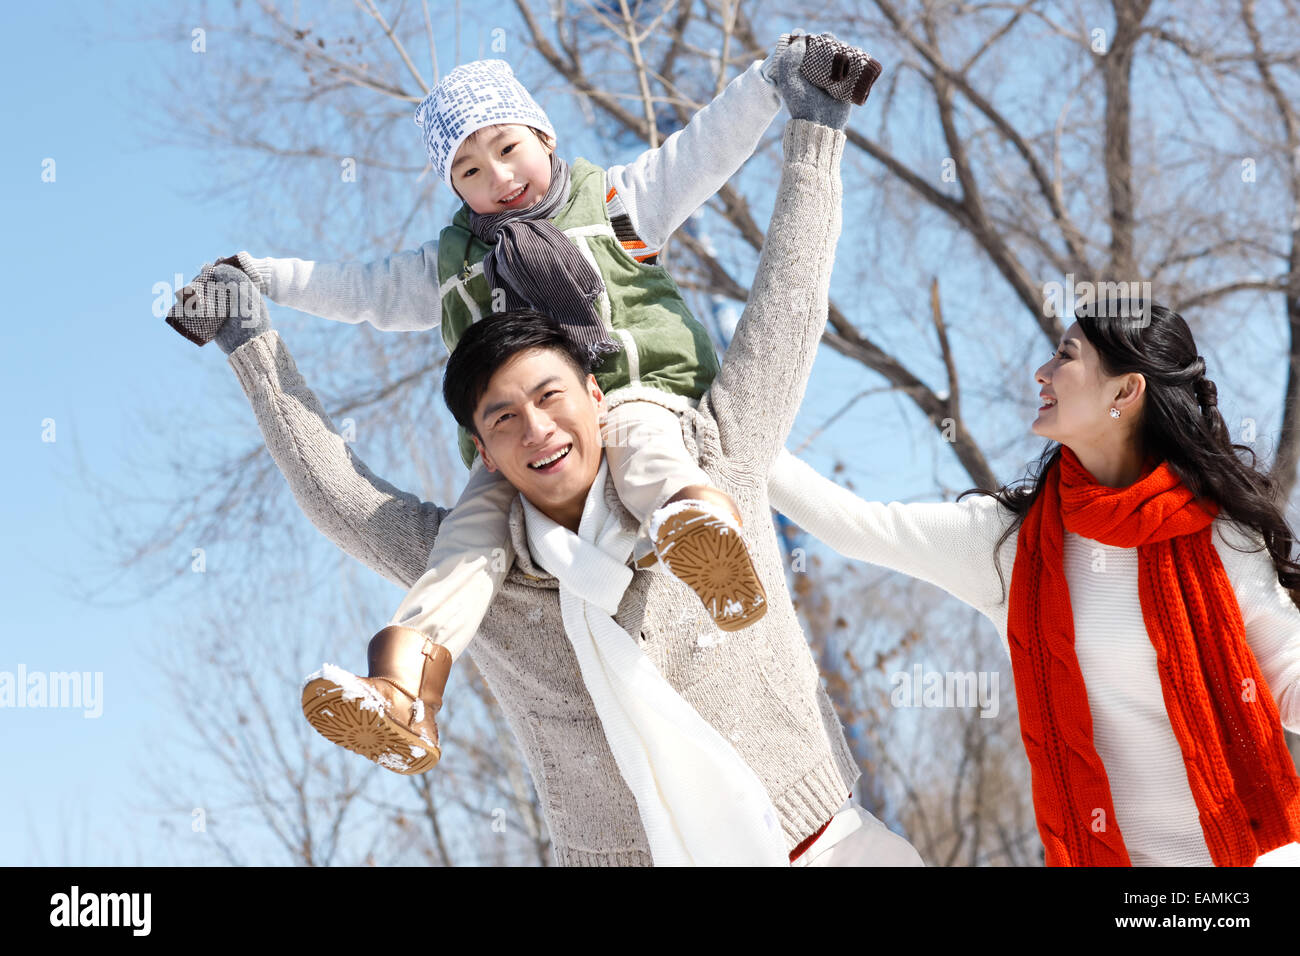 Father carrying the son and mother in the outdoor - Stock Image